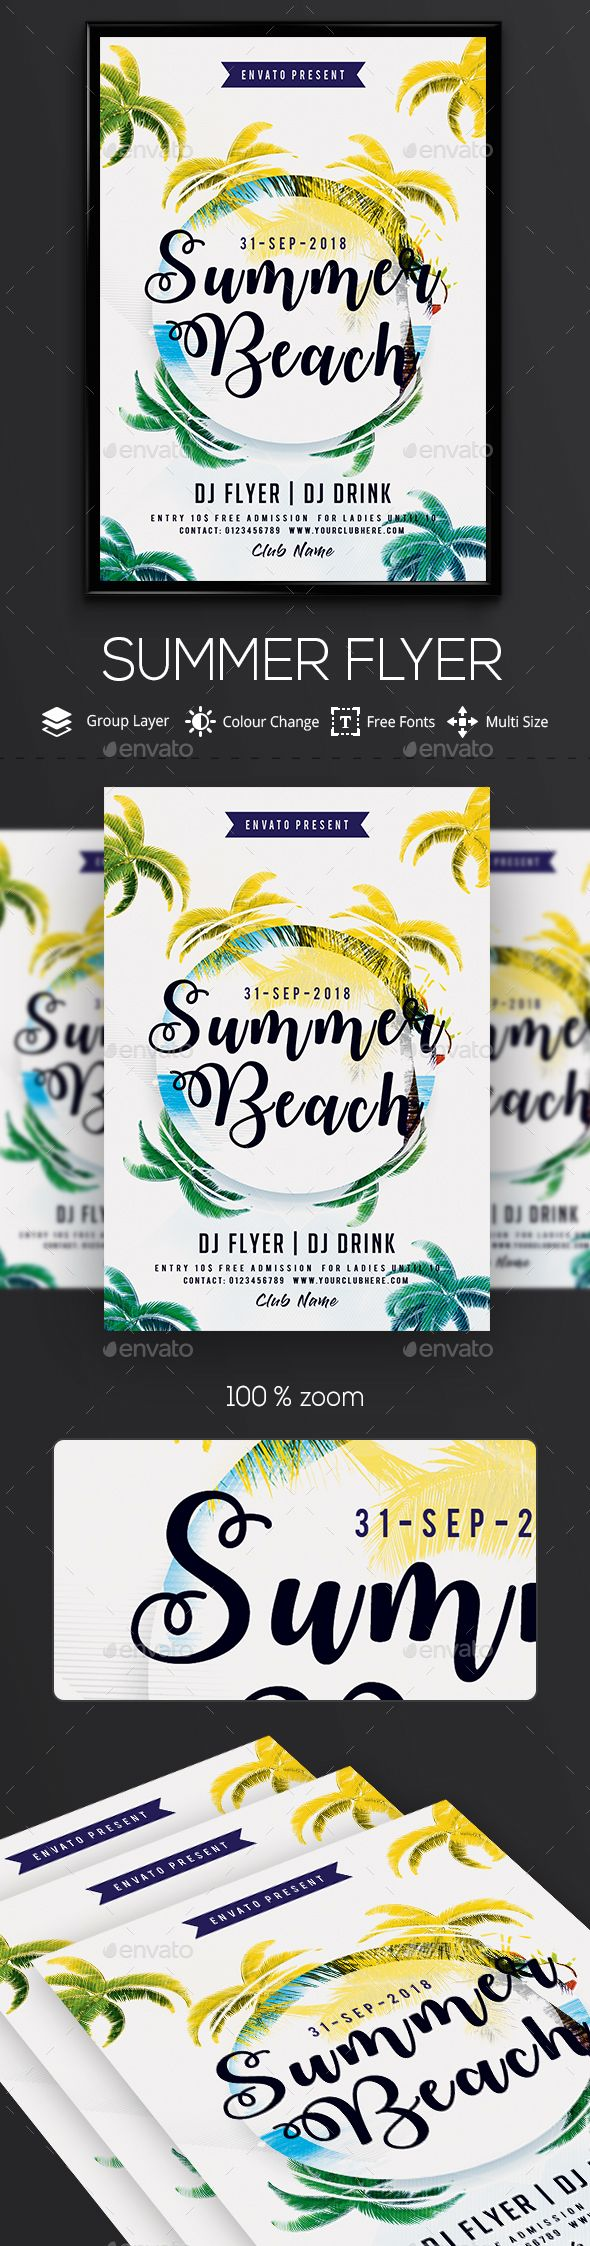 Summer Chill - PSD #Flyer Template - Clubs & Parties Events Download here:  https://graphicriver.net/item/summer-chill-psd-flyer-template/20367258?ref=alena994